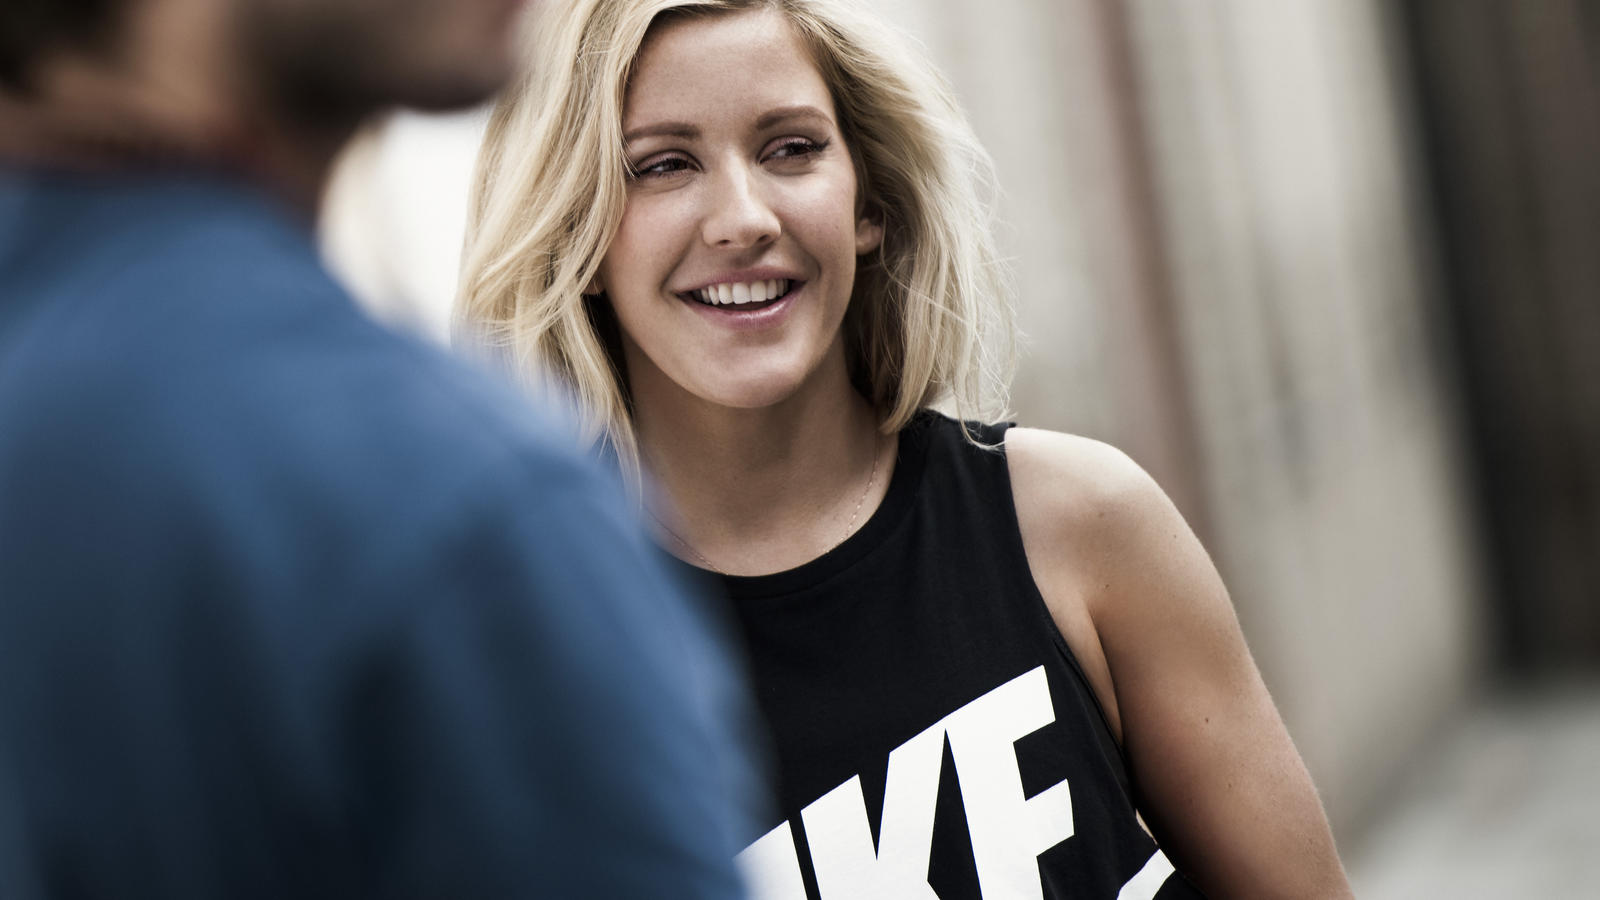 Ellie Goulding A Melody Of Movement Nike News